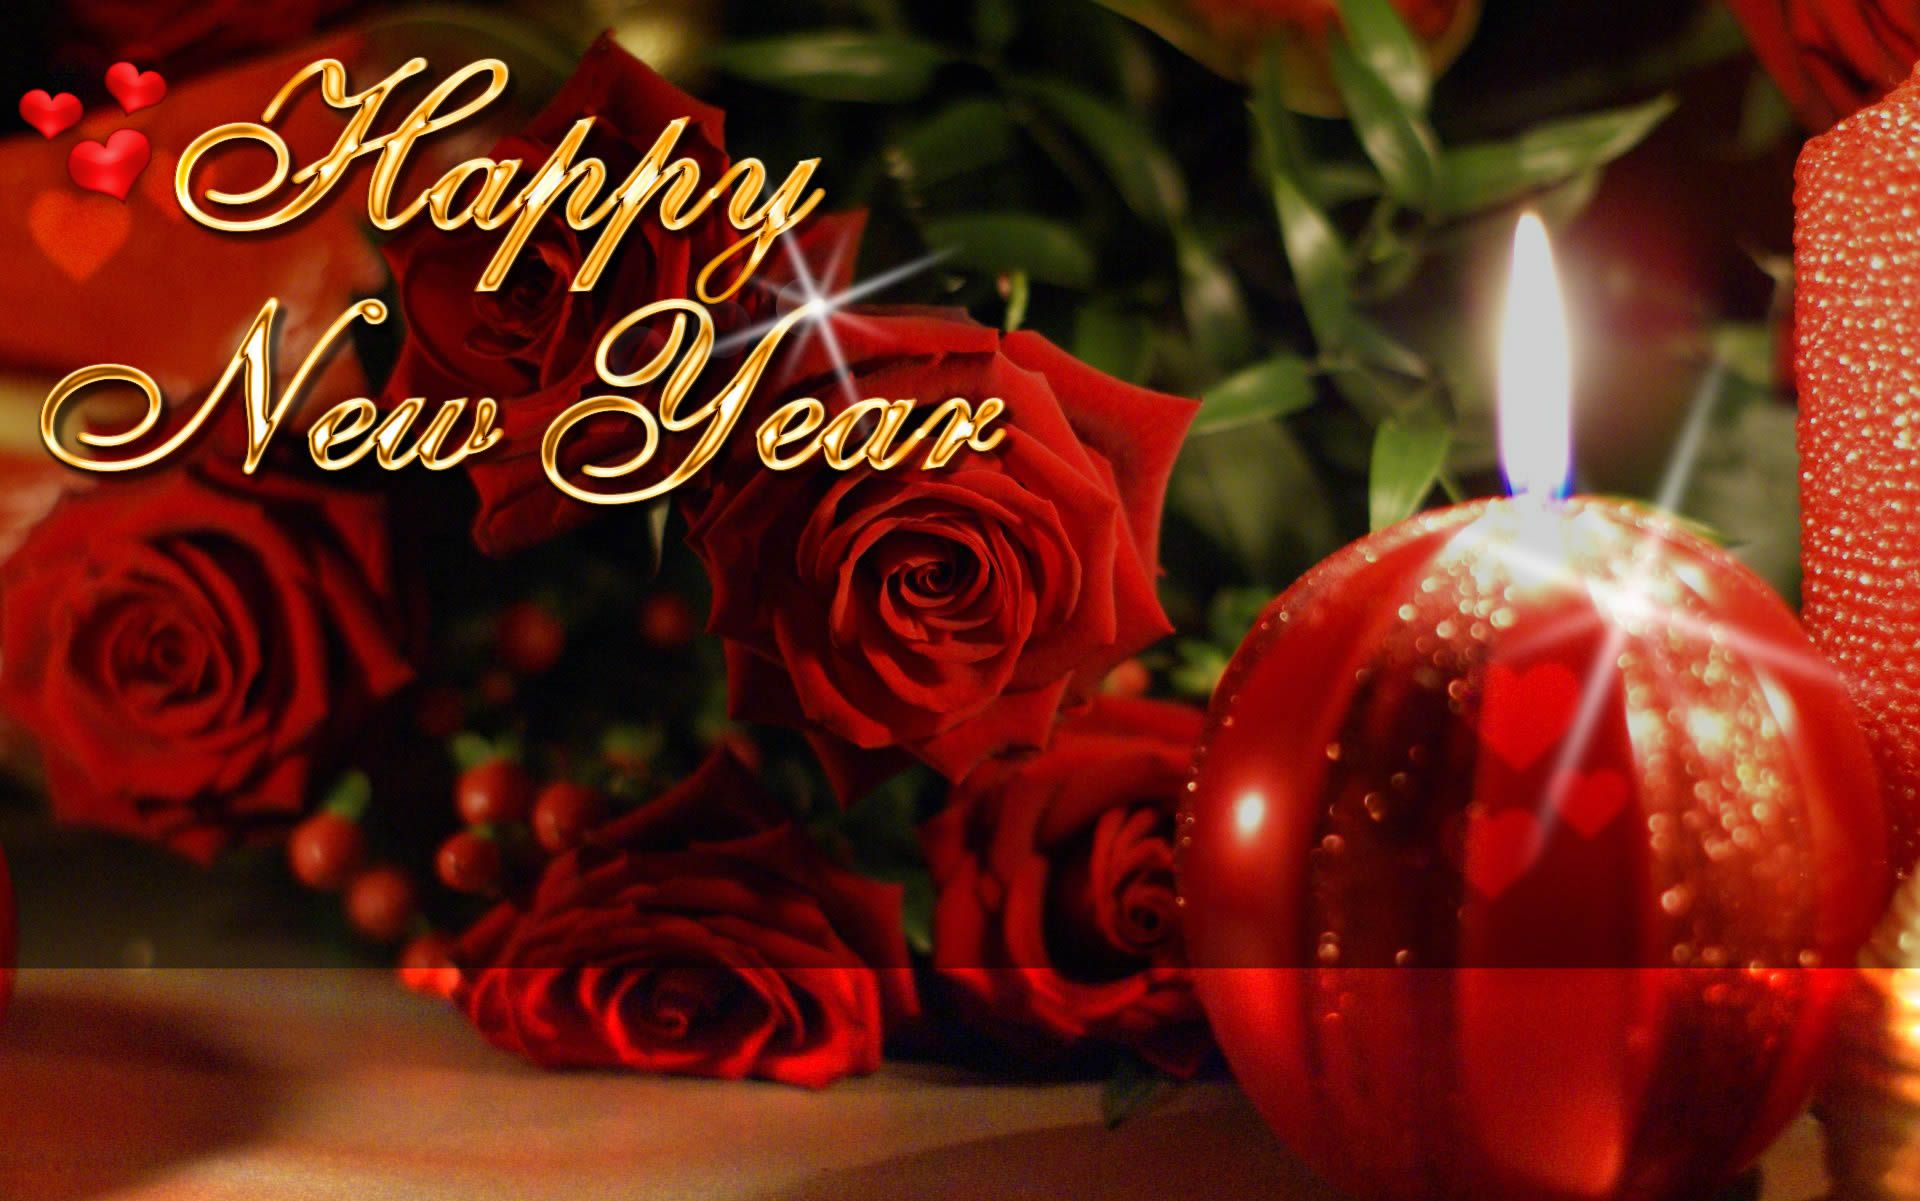 Best wishes for the new year elgin hotels u resorts wishes happy